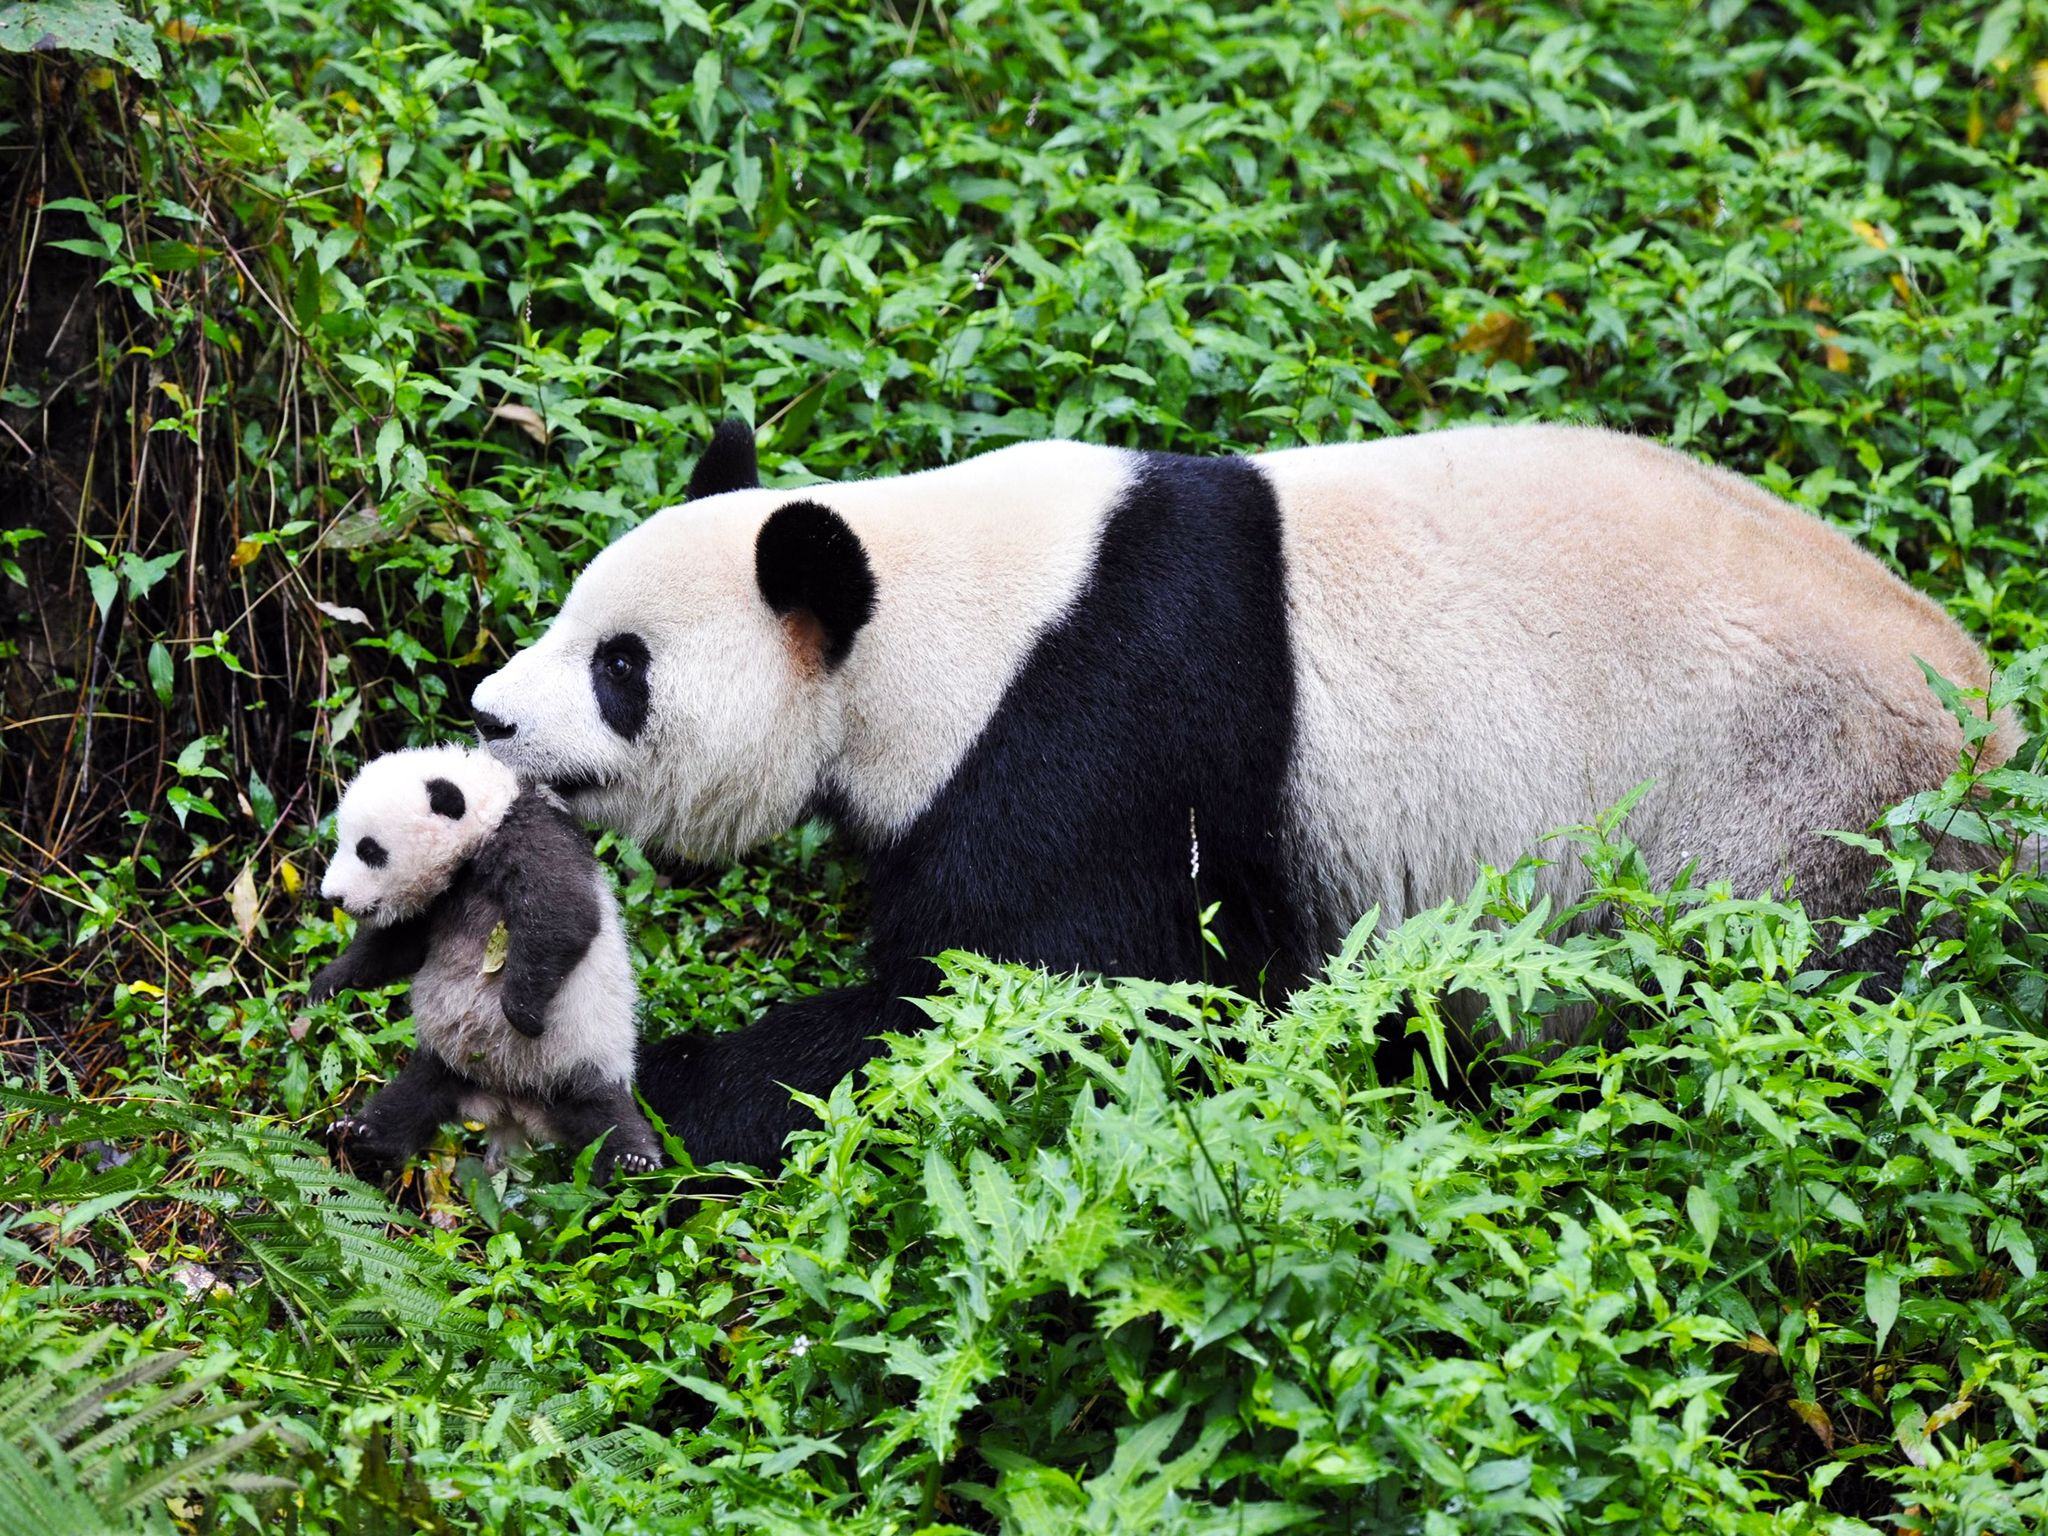 Wolong Panda Breeding Centre, Sichuan Province, China: A mother panda carrying her cub. This... [Photo of the day - September 2014]